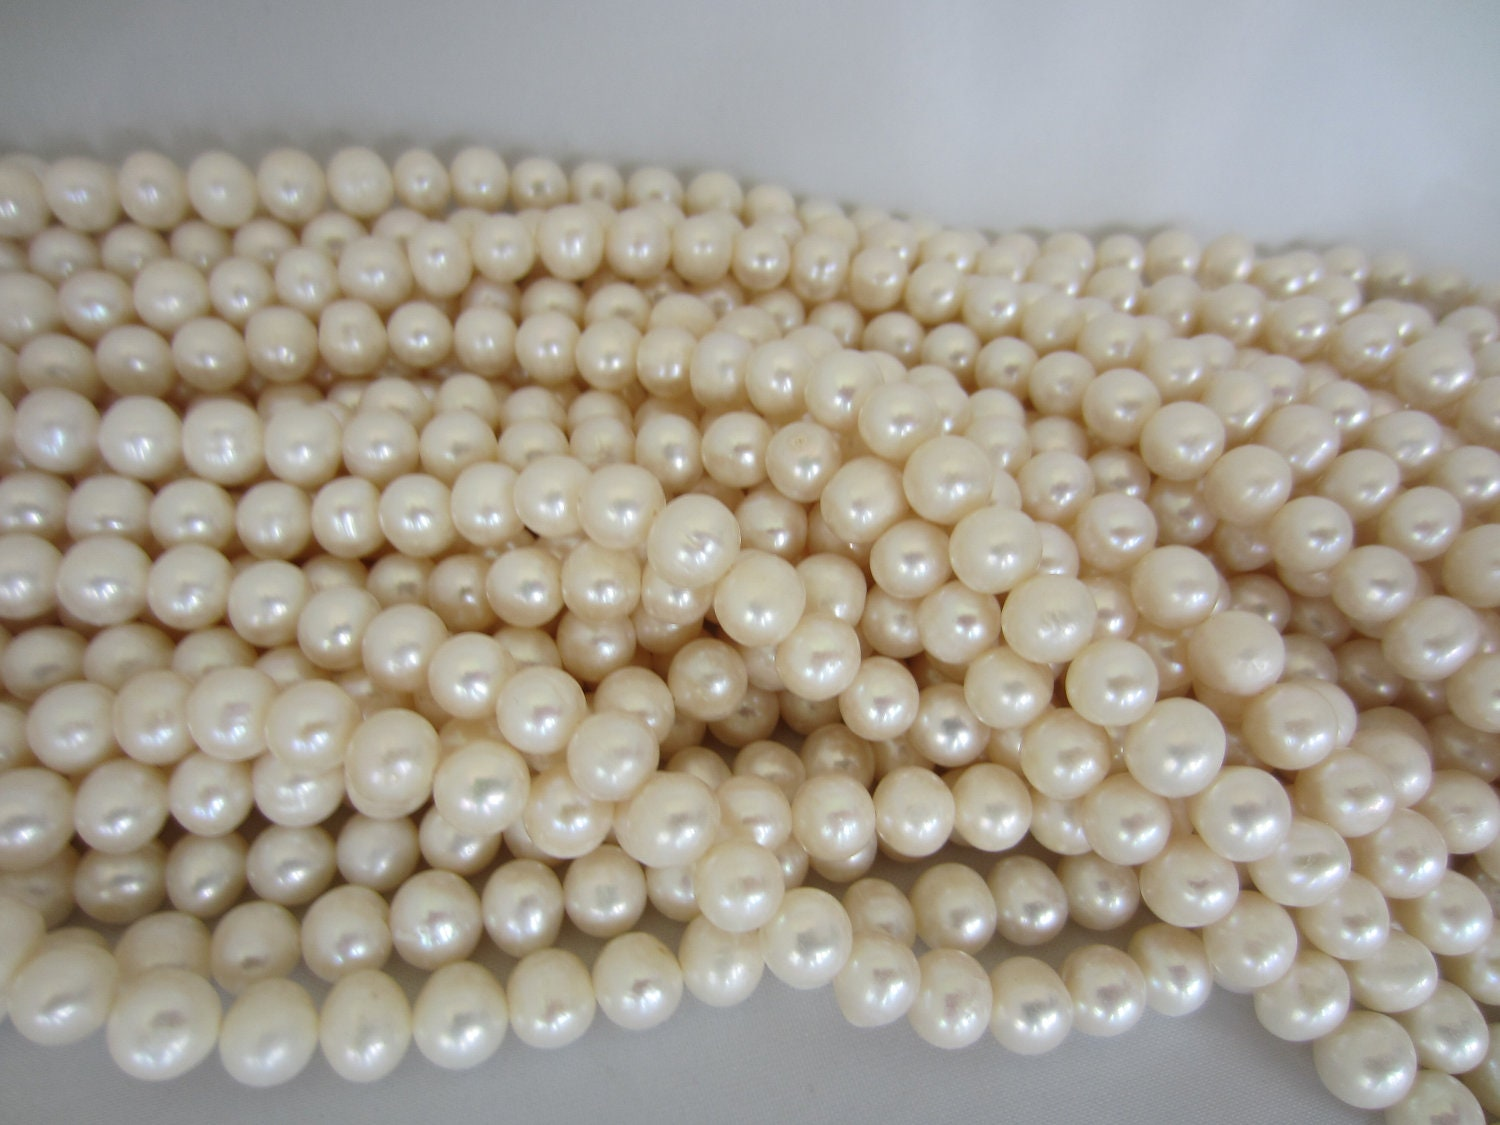 Cultivated Pearls Vs Natural Pearls